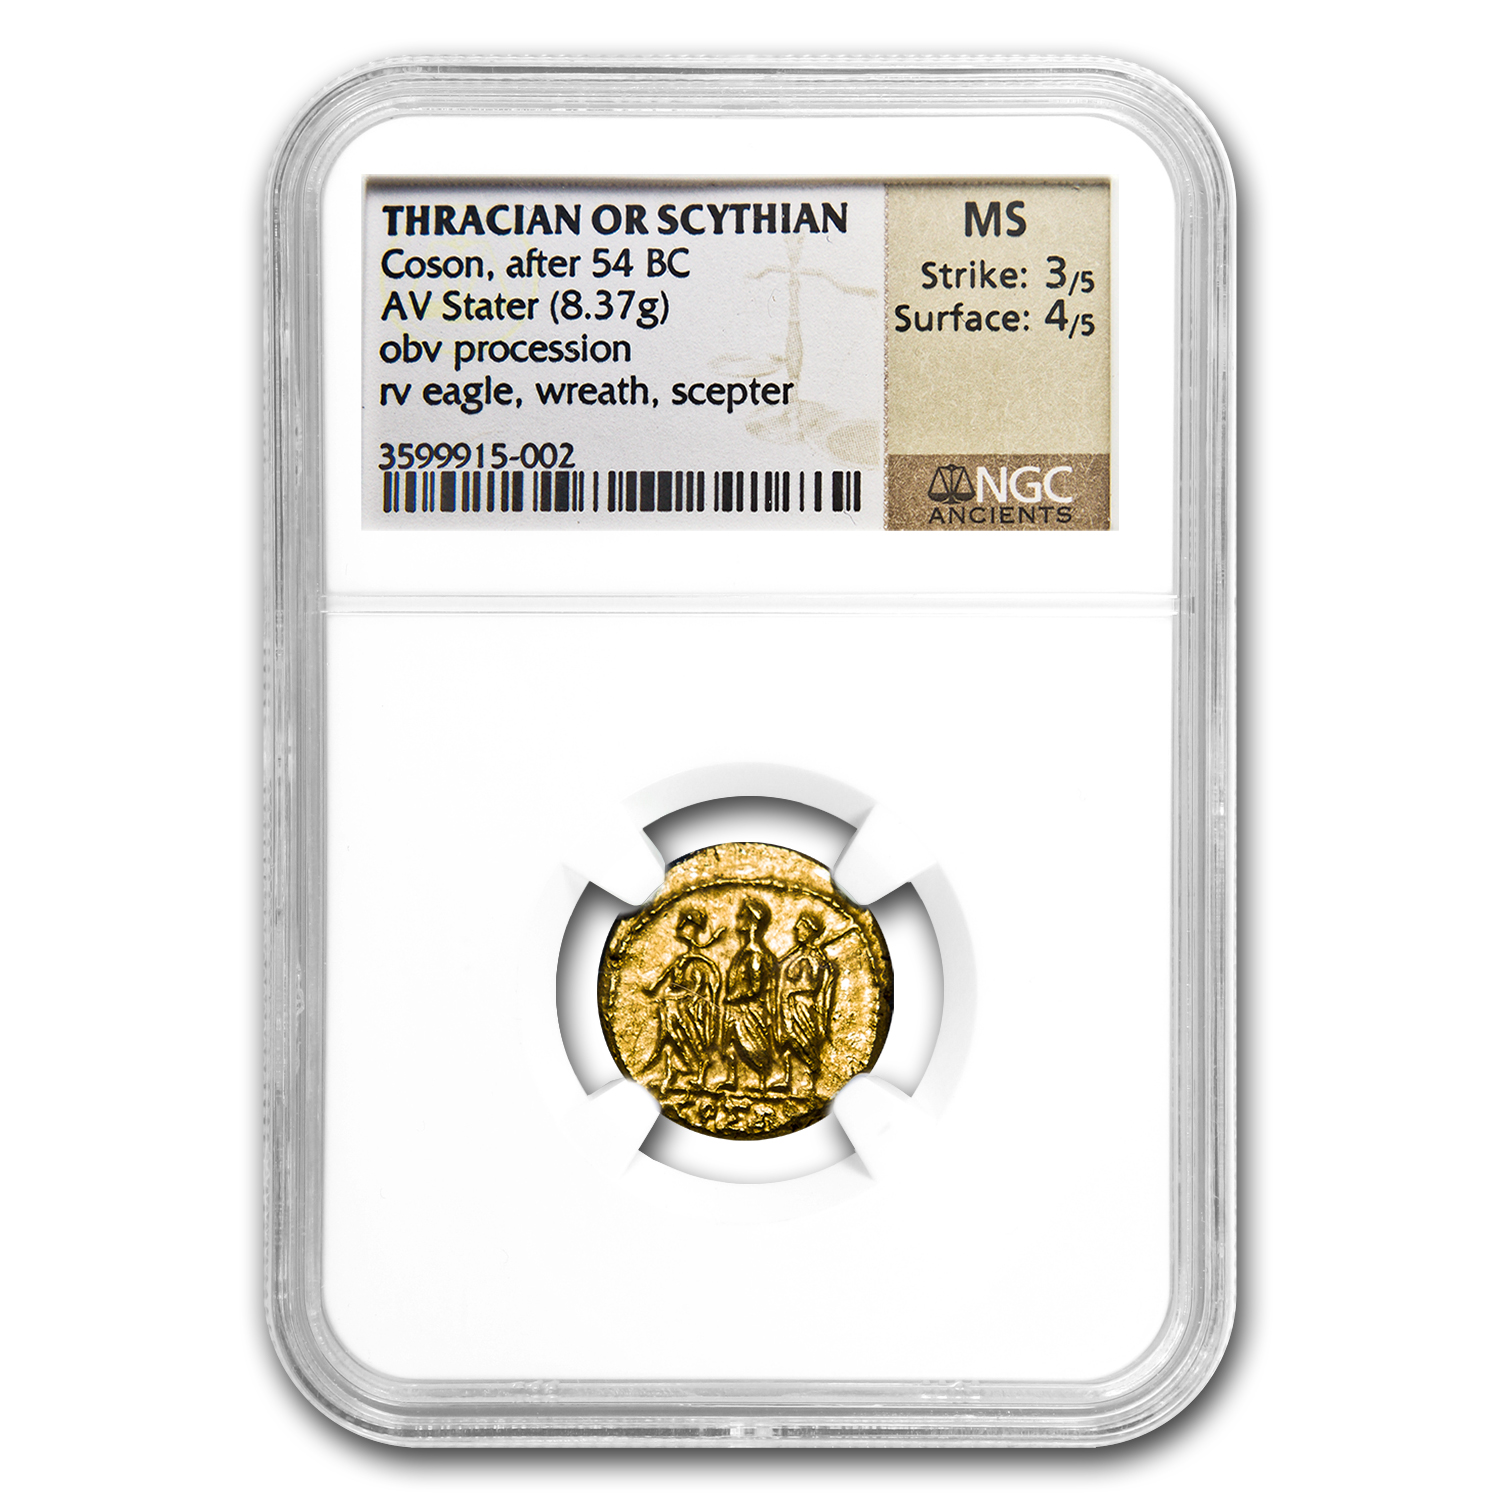 Thracian/Scythian Gold Stater 1st Cent. BC NGC - Uncirculated